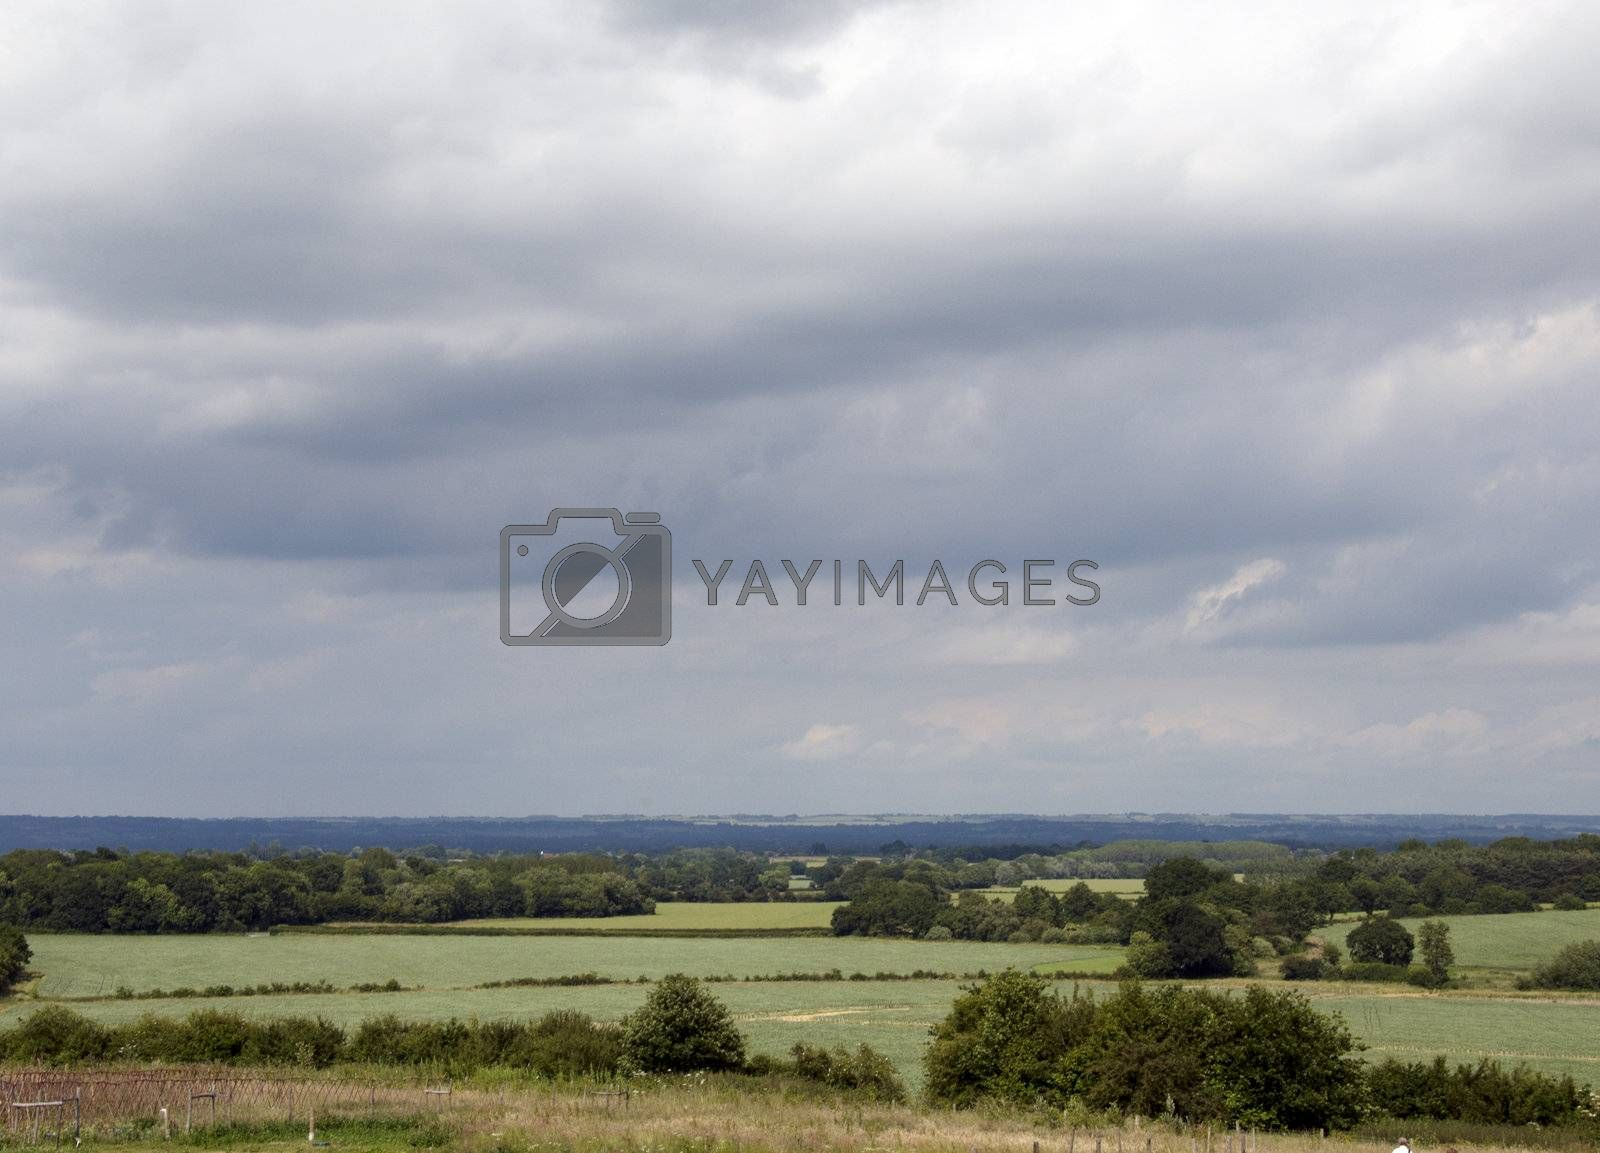 A view of the Kent countryside on a cloudy day